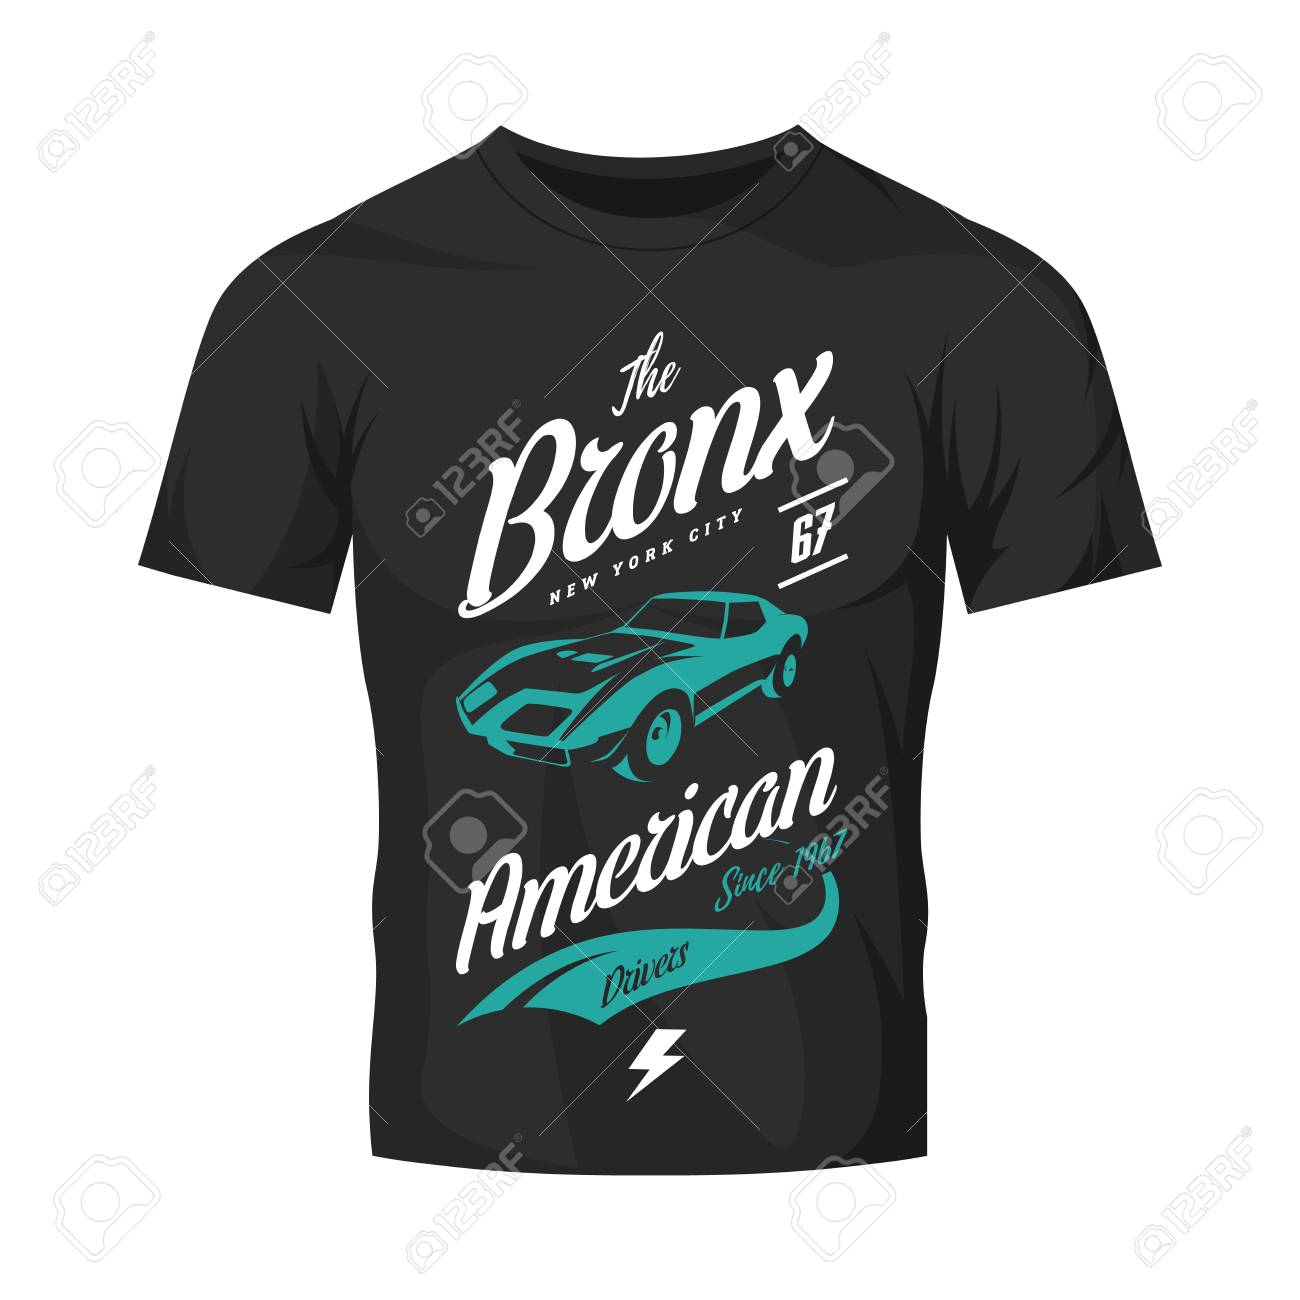 46090e05 American Muscle Car T-shirt Design. Royalty Free Cliparts, Vectors ...